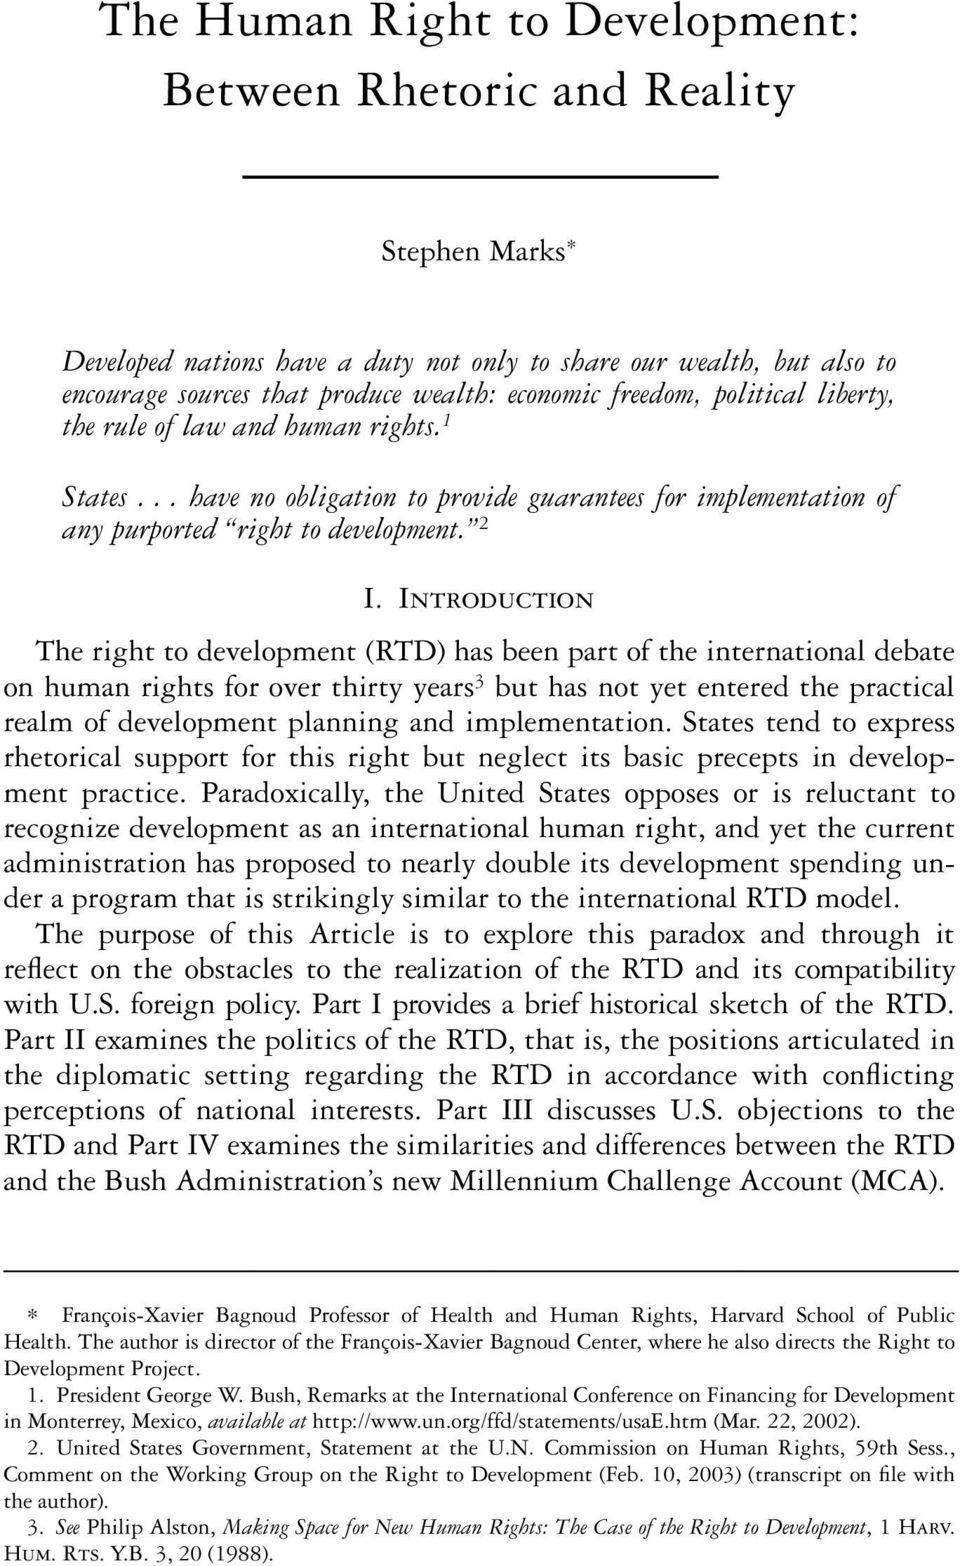 Introduction The right to development (RTD) has been part of the international debate on human rights for over thirty years 3 but has not yet entered the practical realm of development planning and